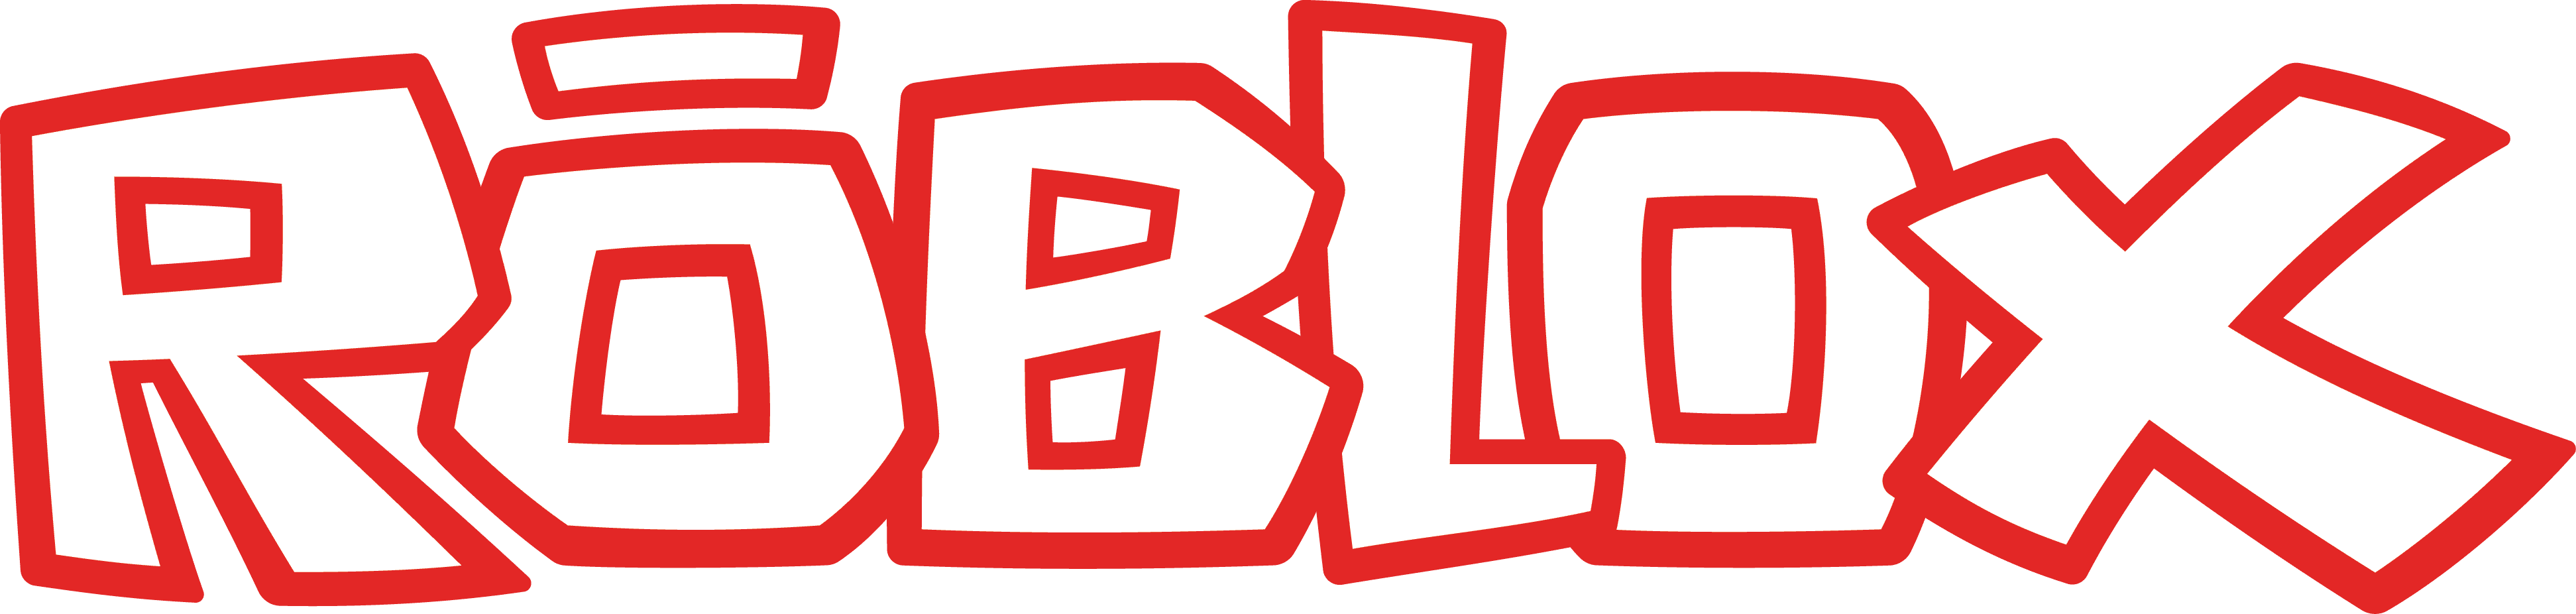 Roblox Logo png